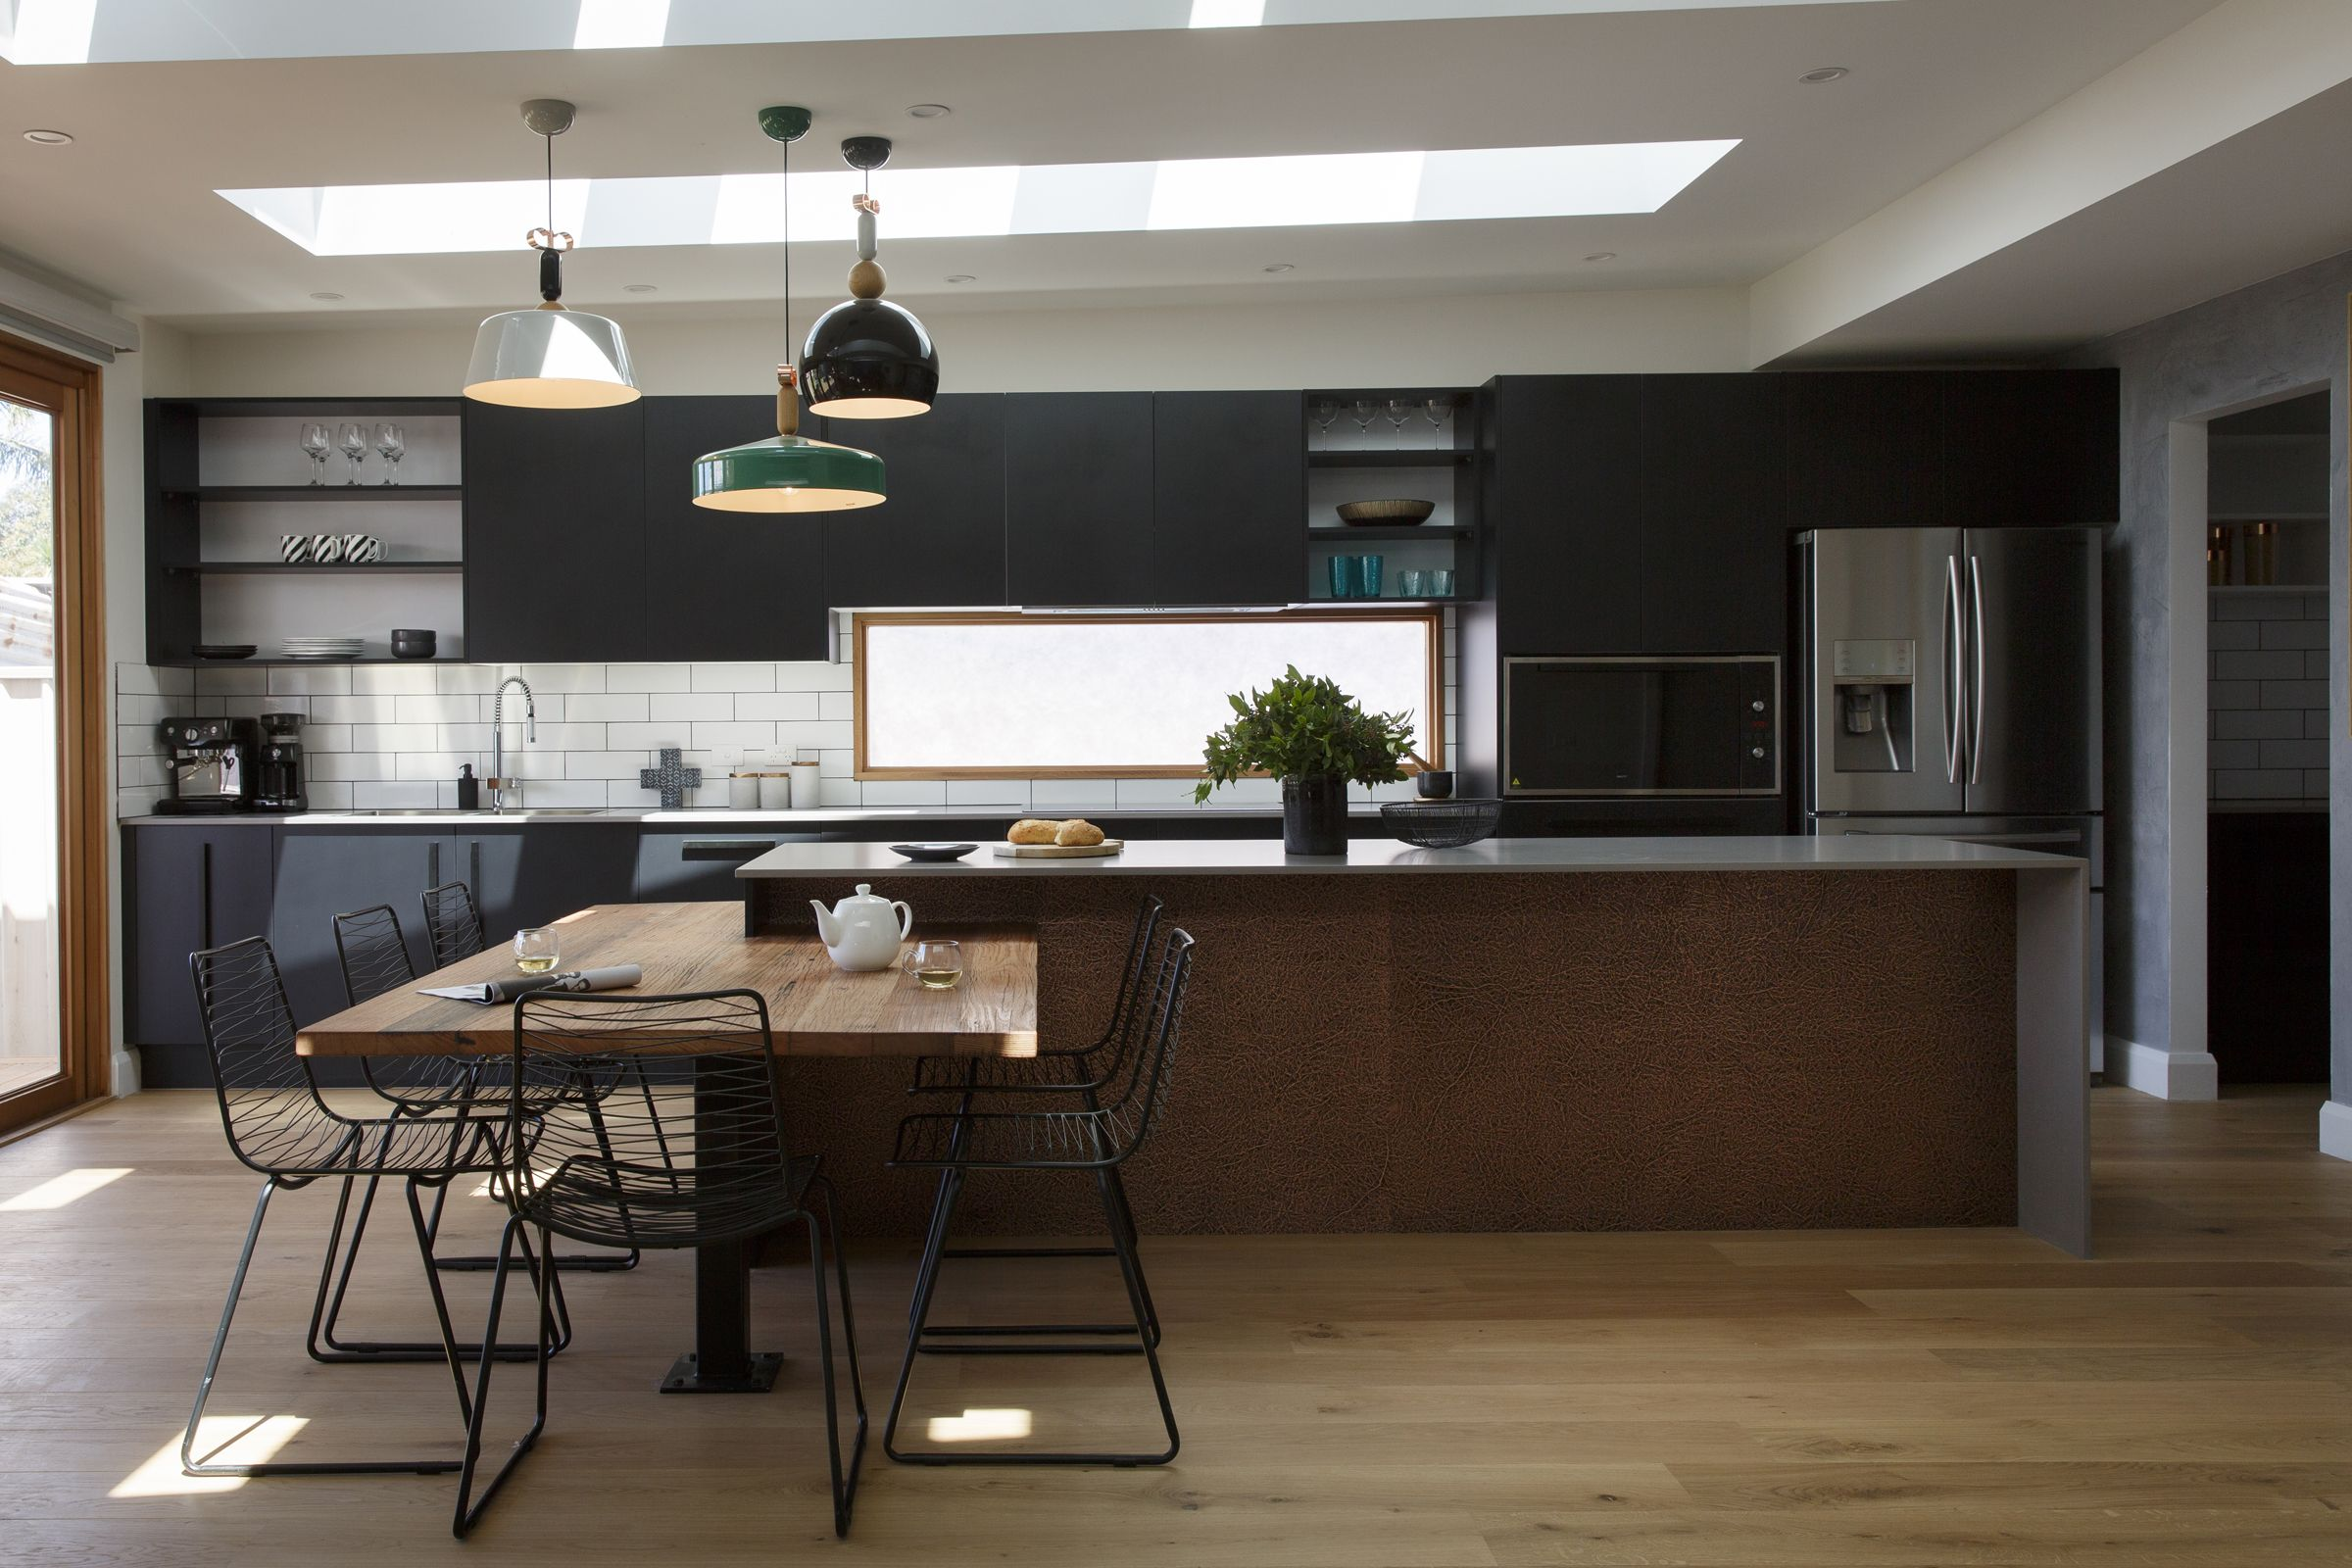 Darren palmerus pick of the hottest kitchen trends for